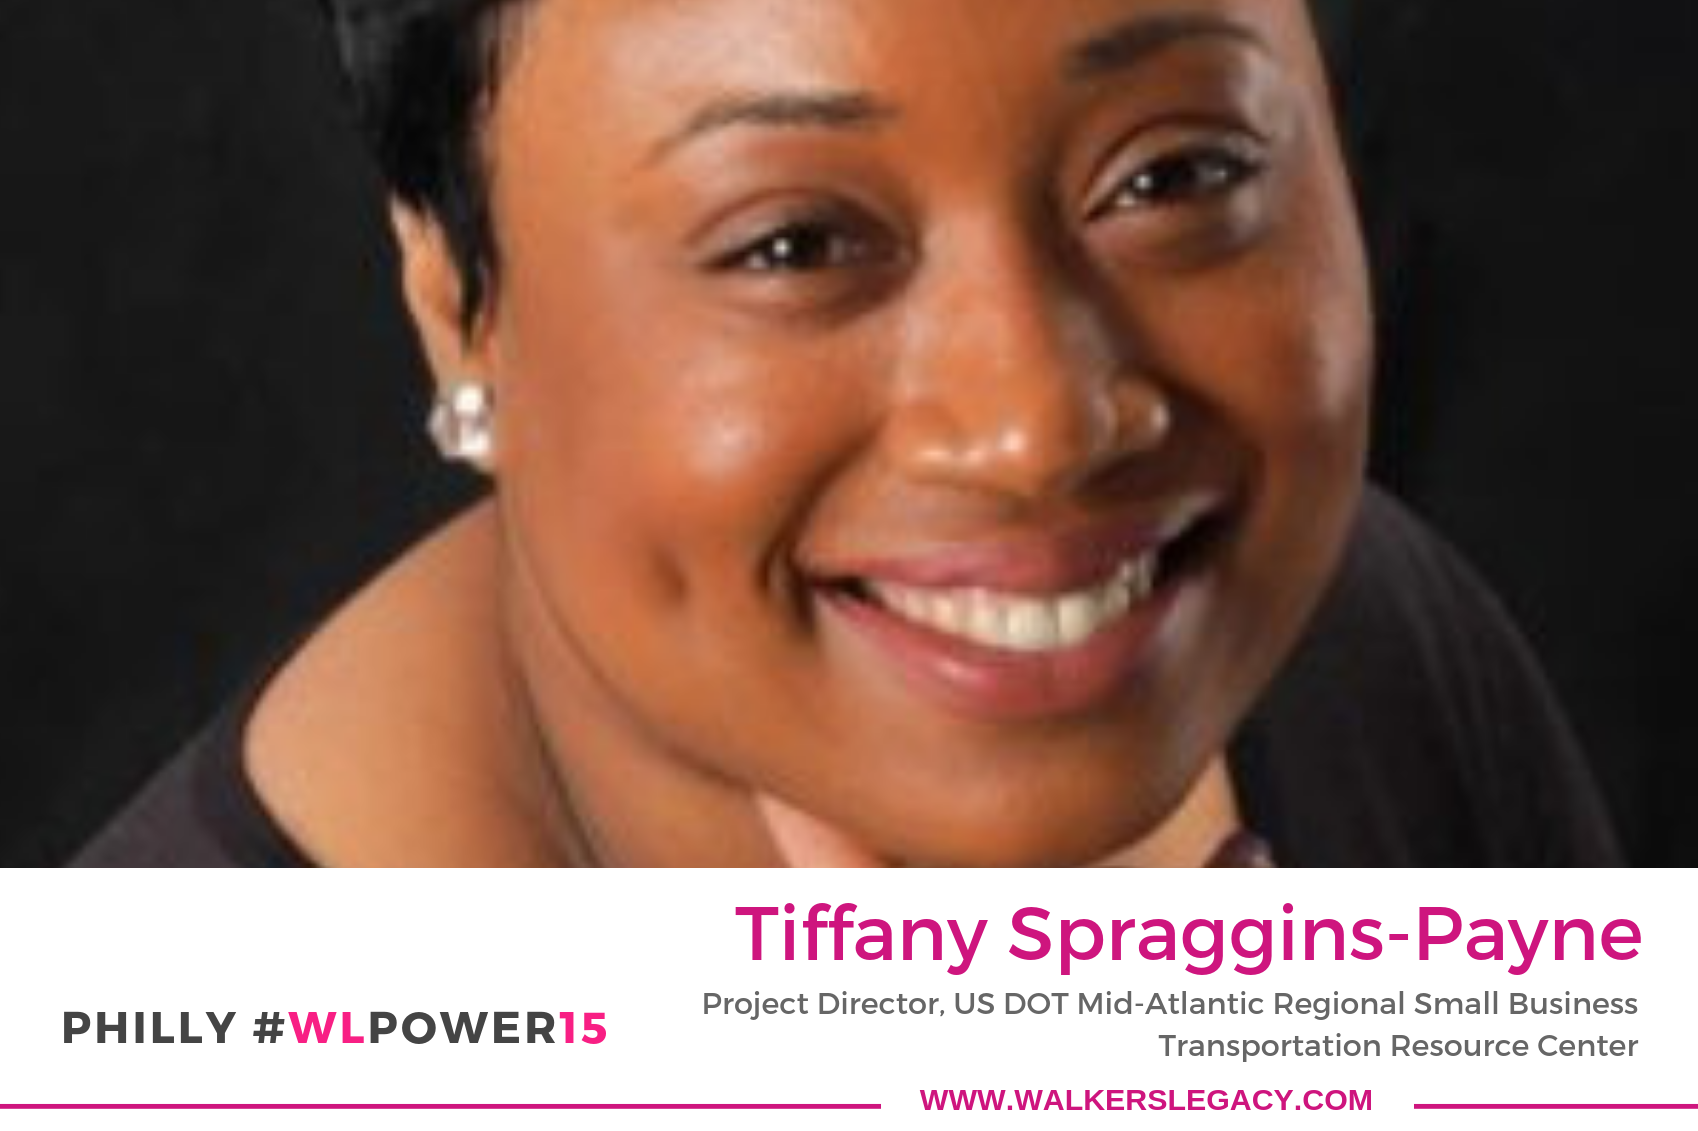 Tiffany Spraggins-Payne